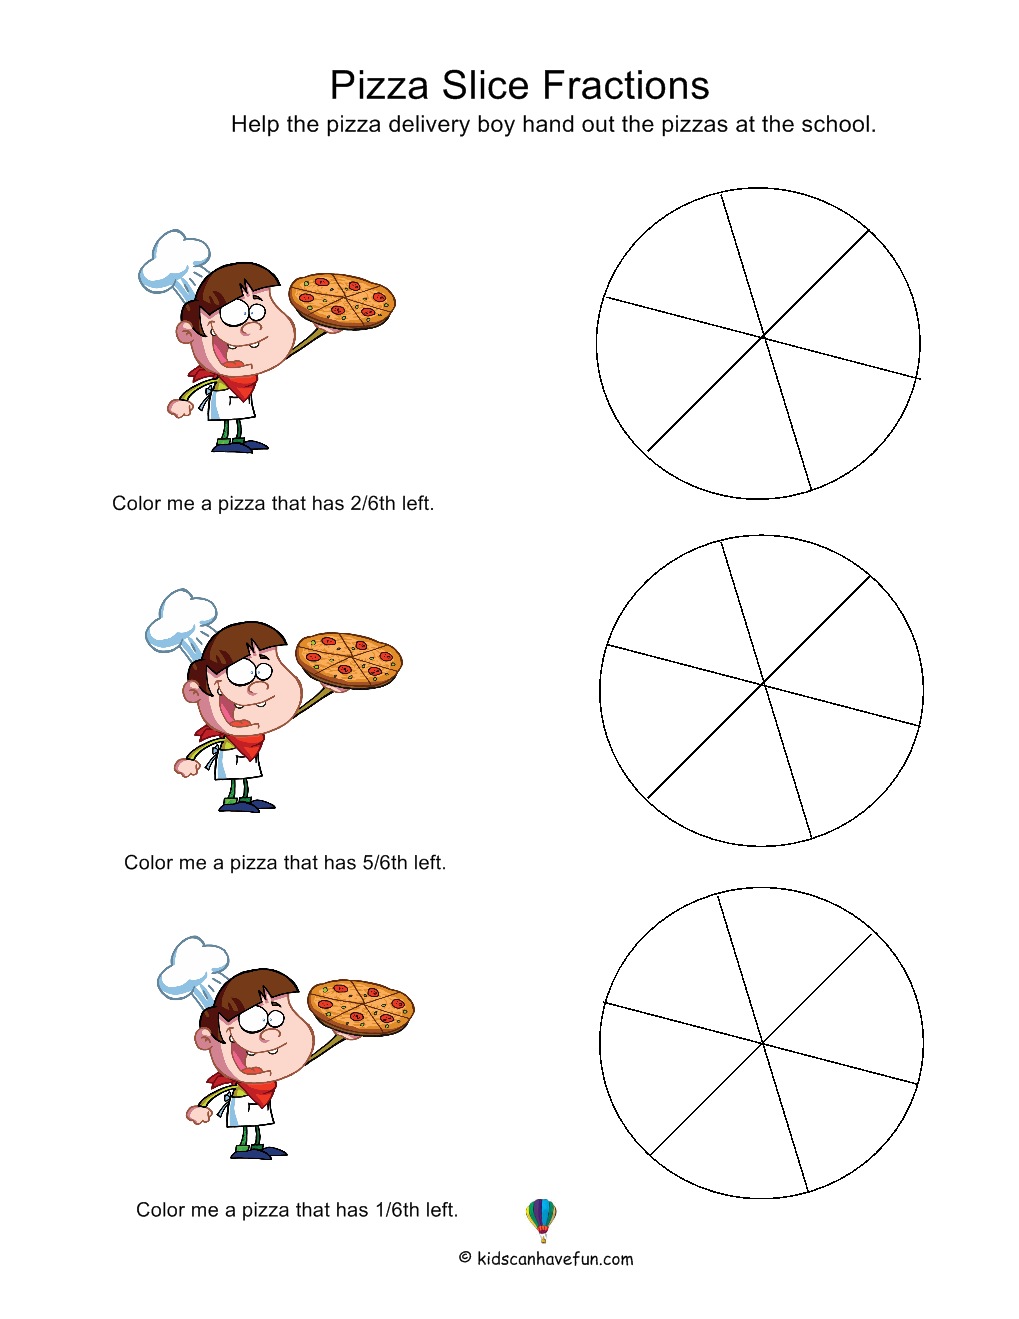 worksheet Amazing Worksheets pizza slice fractions worksheet amazing resource for worksheets of all kinds must use in